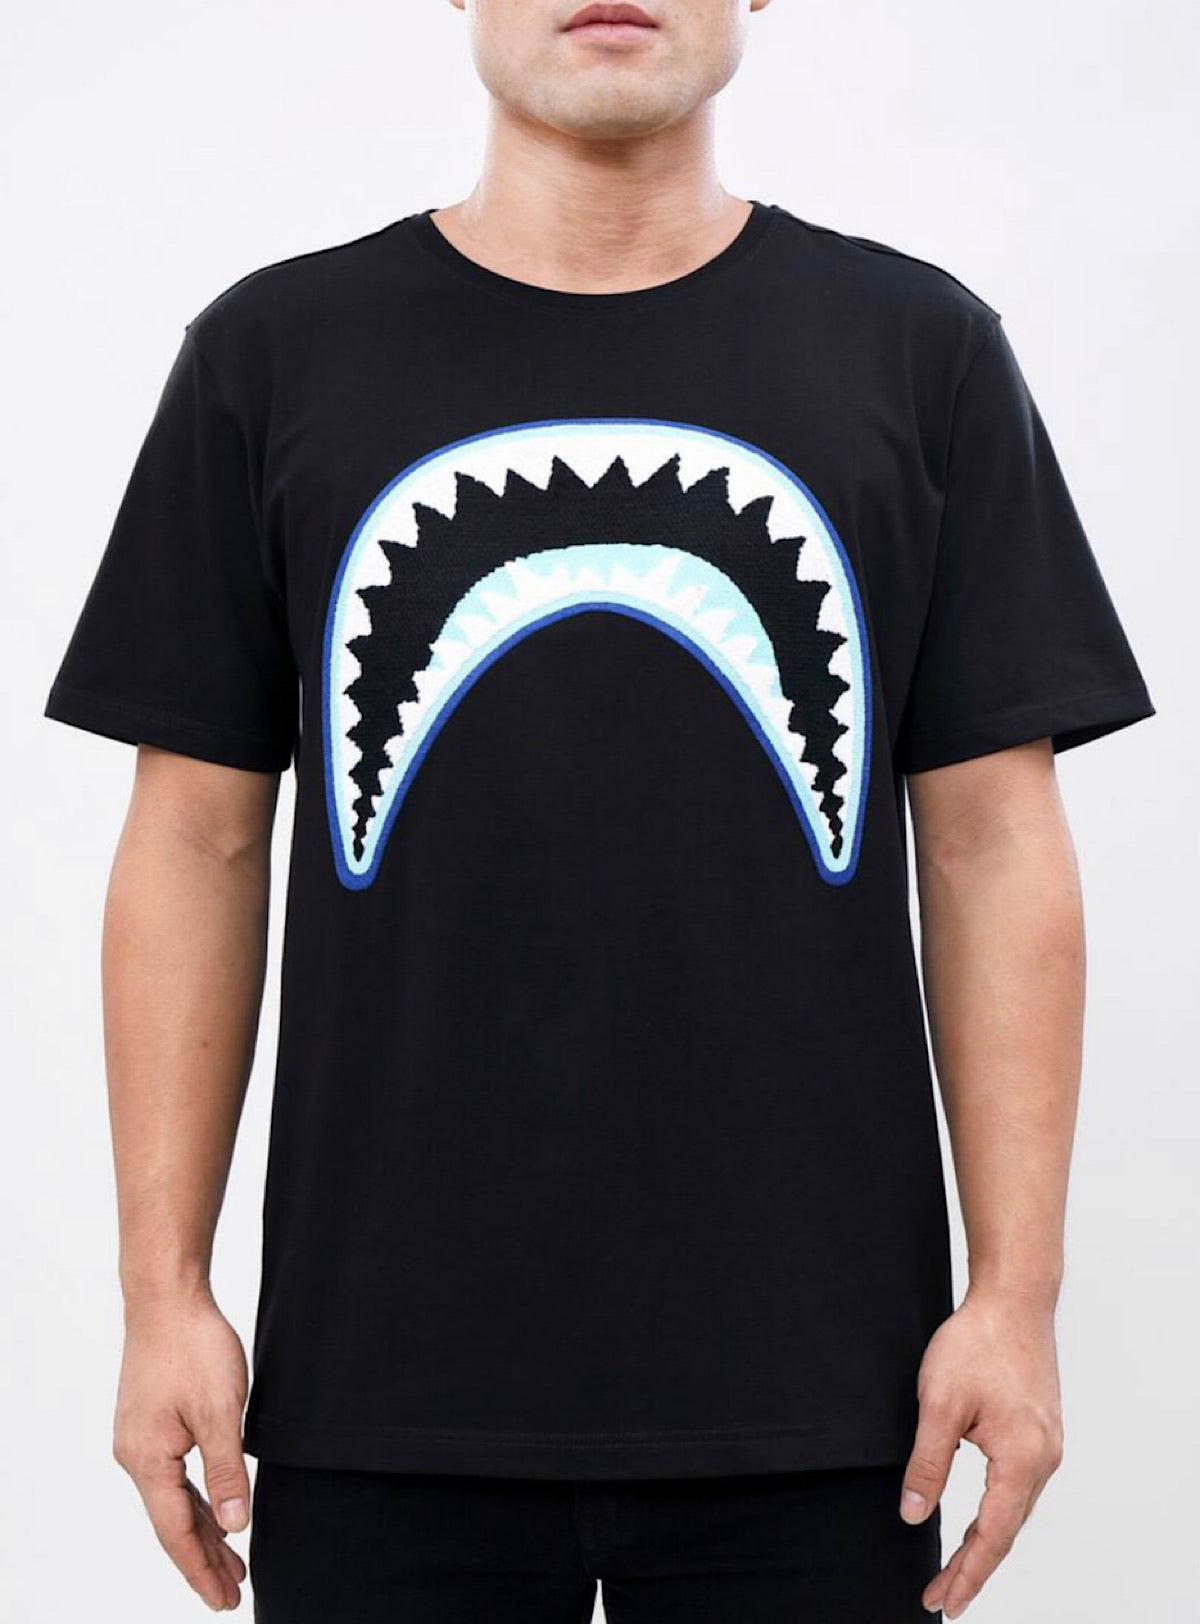 Eternity T-Shirt - Shark Mouth - Black And Blue - E1133198